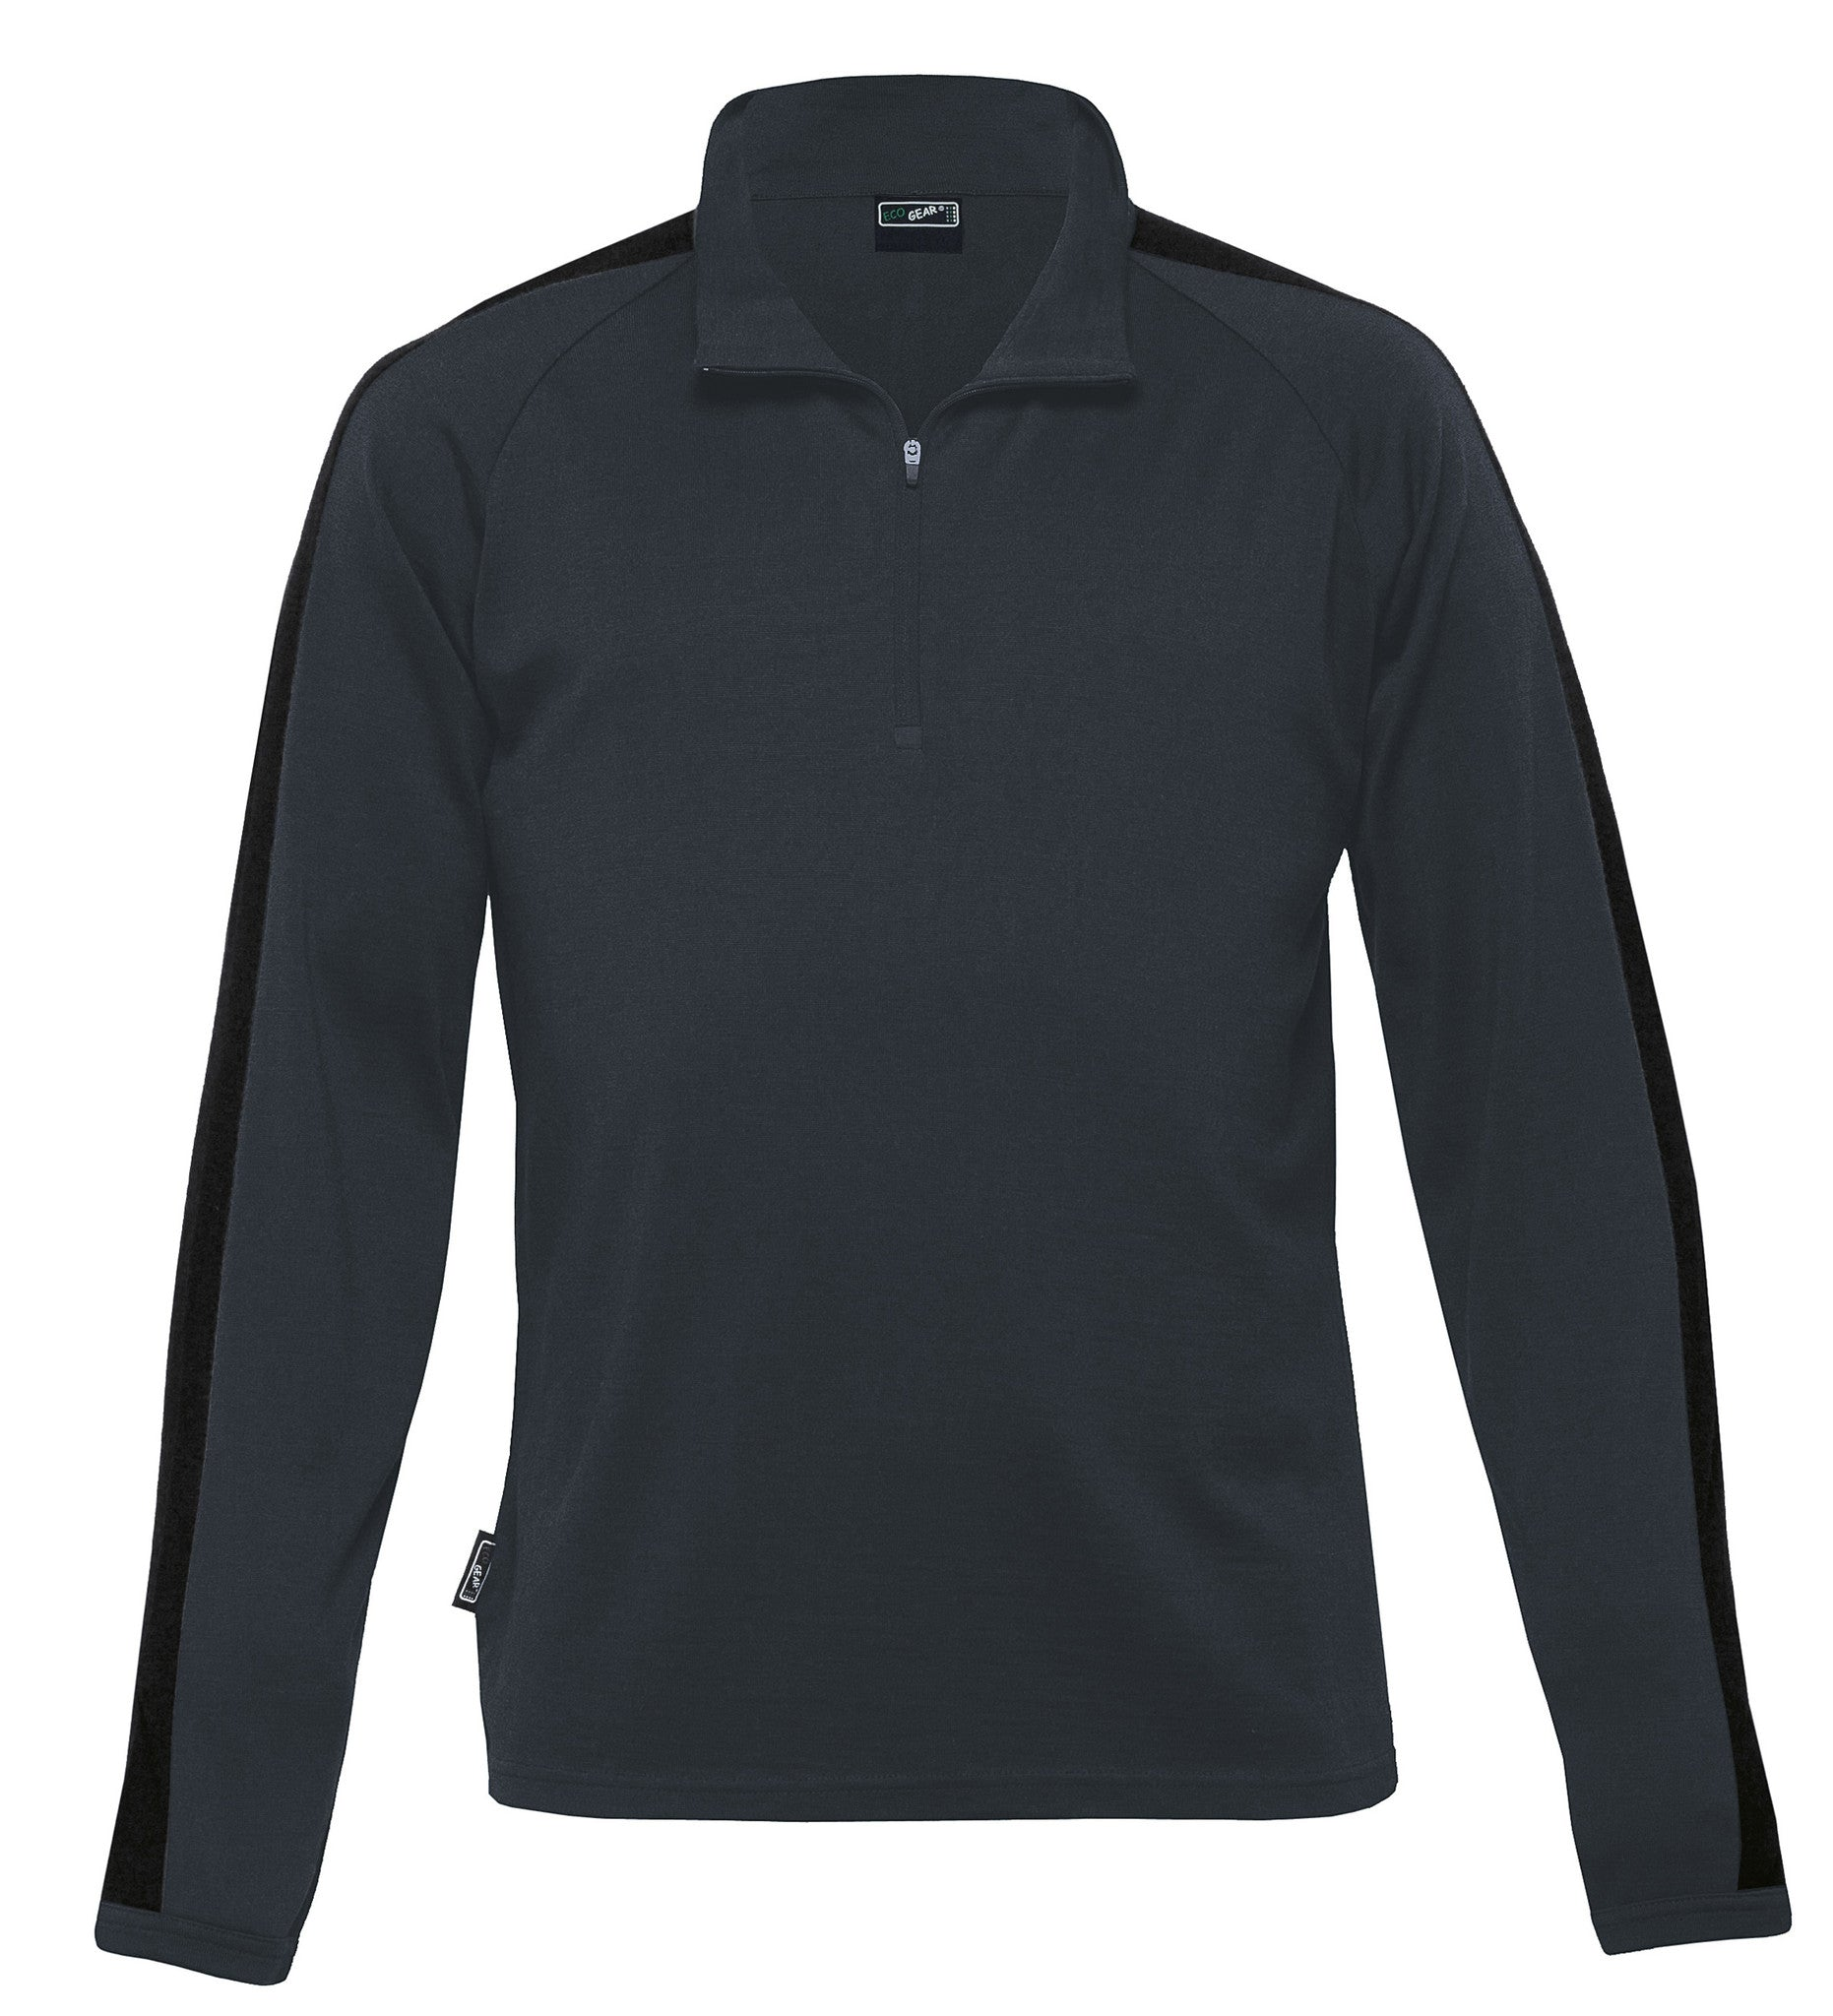 Gear For Life-Gear For Life Merino Contrast Insert Pullover-Mens--Corporate Apparel Online - 1